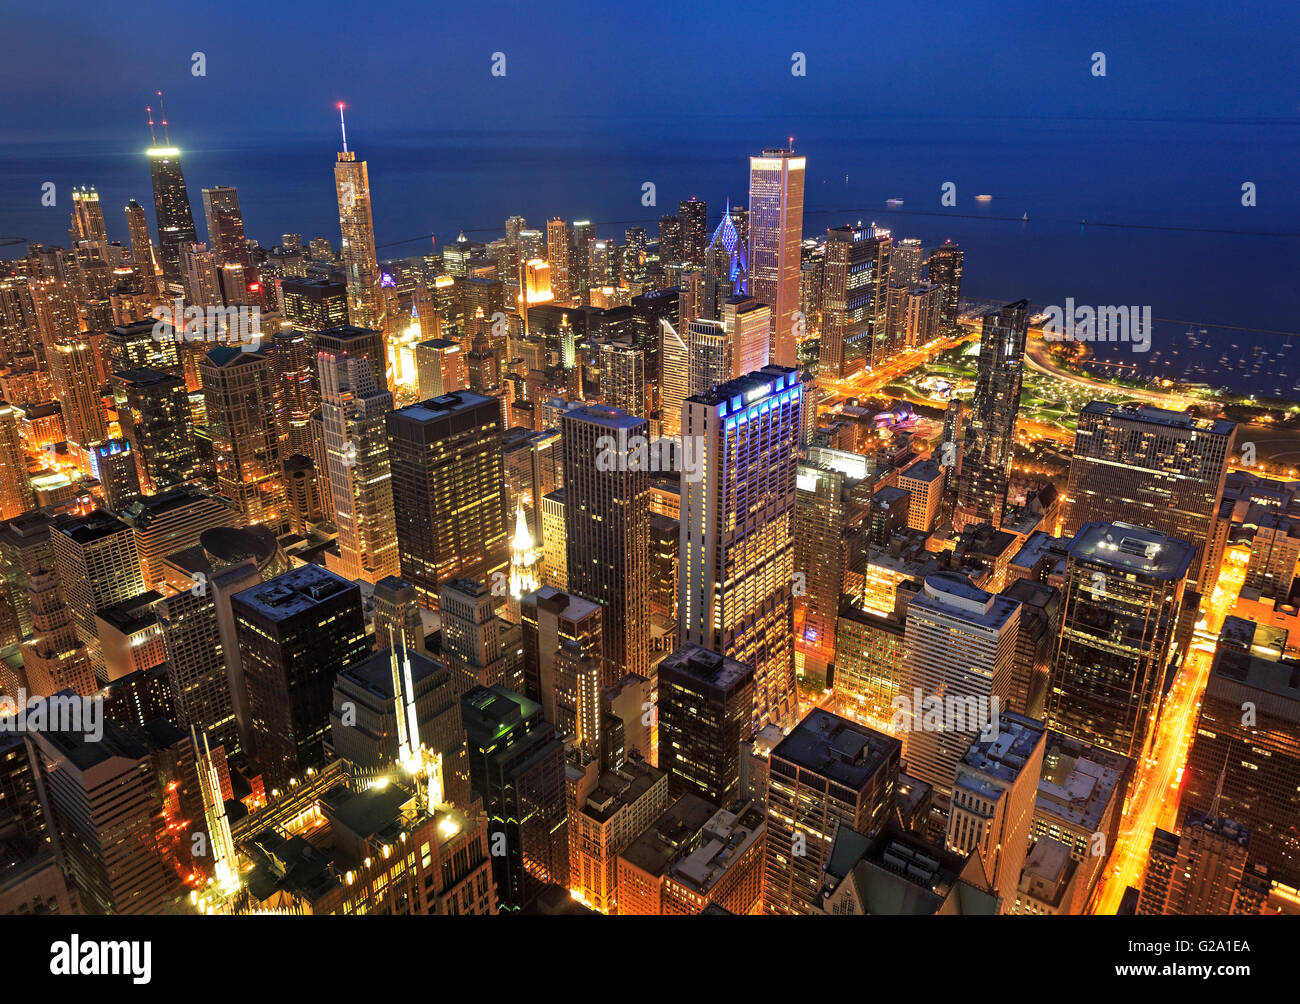 Chicago skyline at night, Illinois, USA - Stock Image